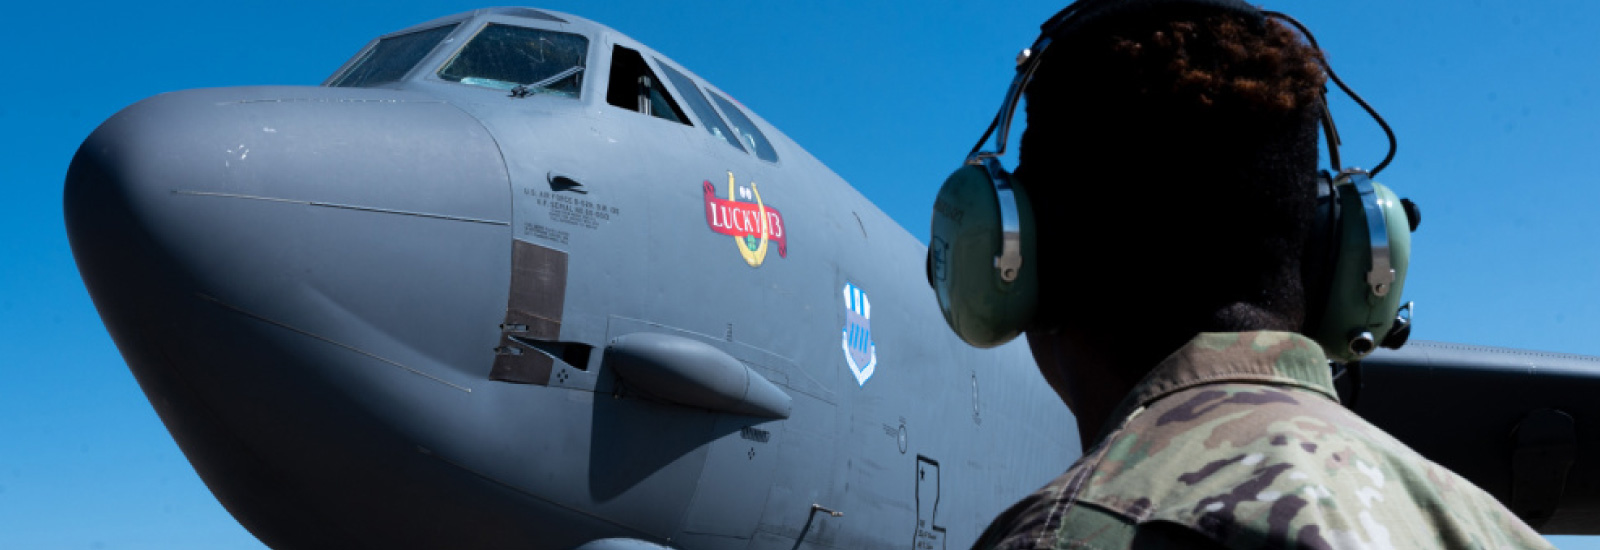 9 Reasons the B-52 Bomber is a Big Old Bada** - 1. USAF's Loyalty to B-52 Bombers